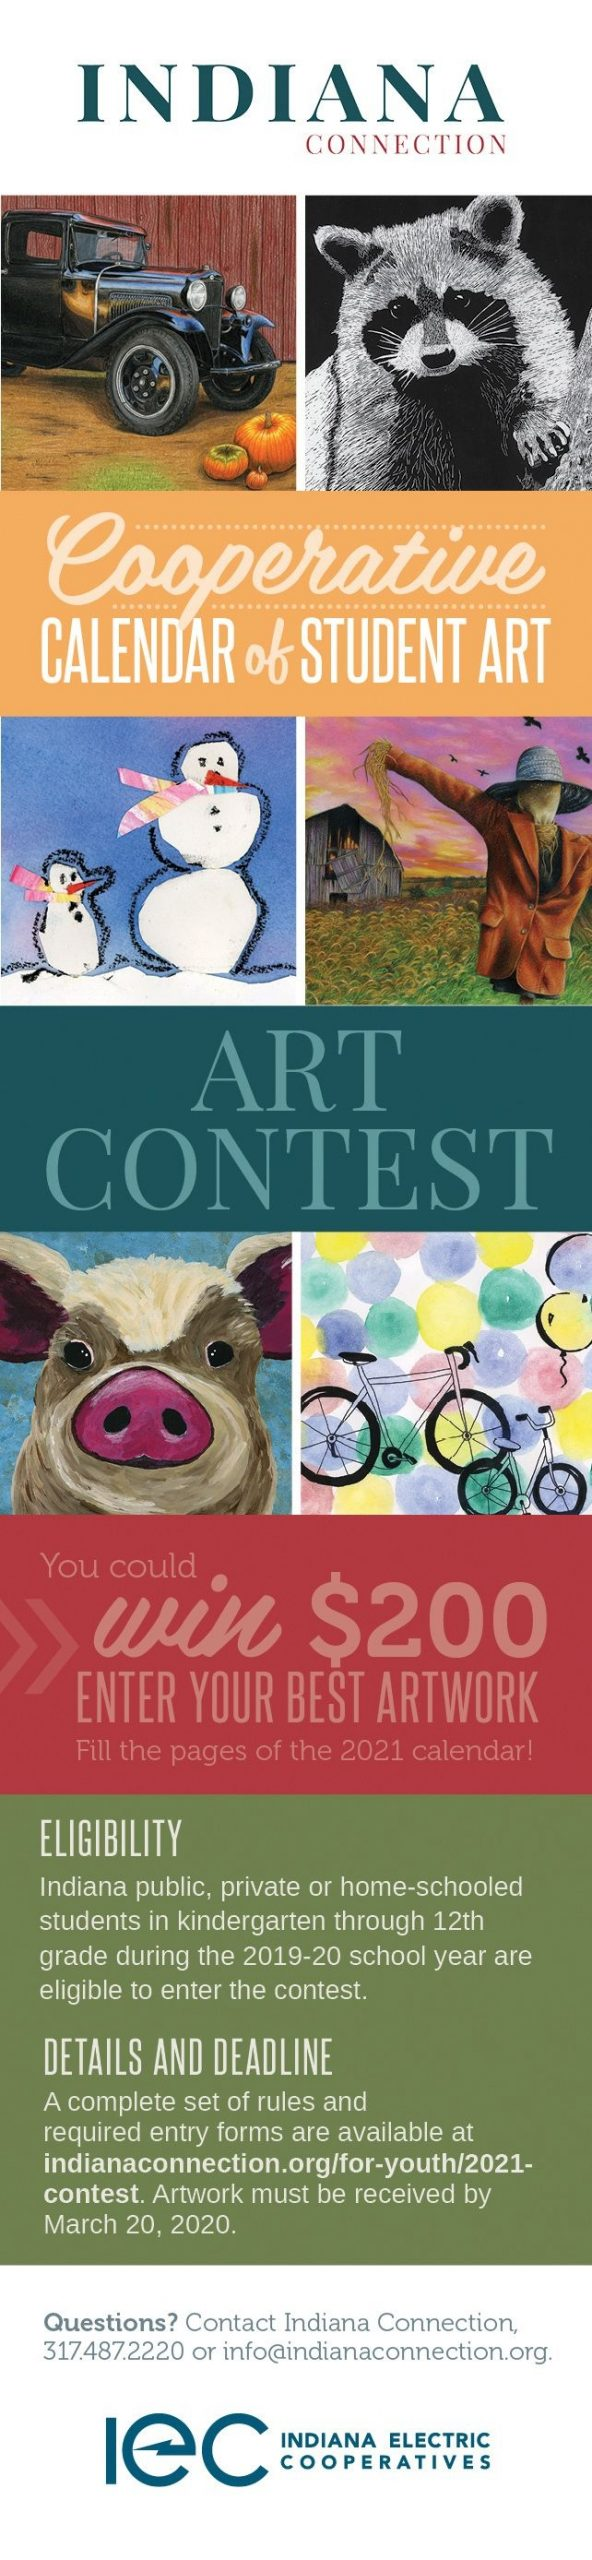 Enter The 2021 Calendar Of Student Art Contest - Indiana